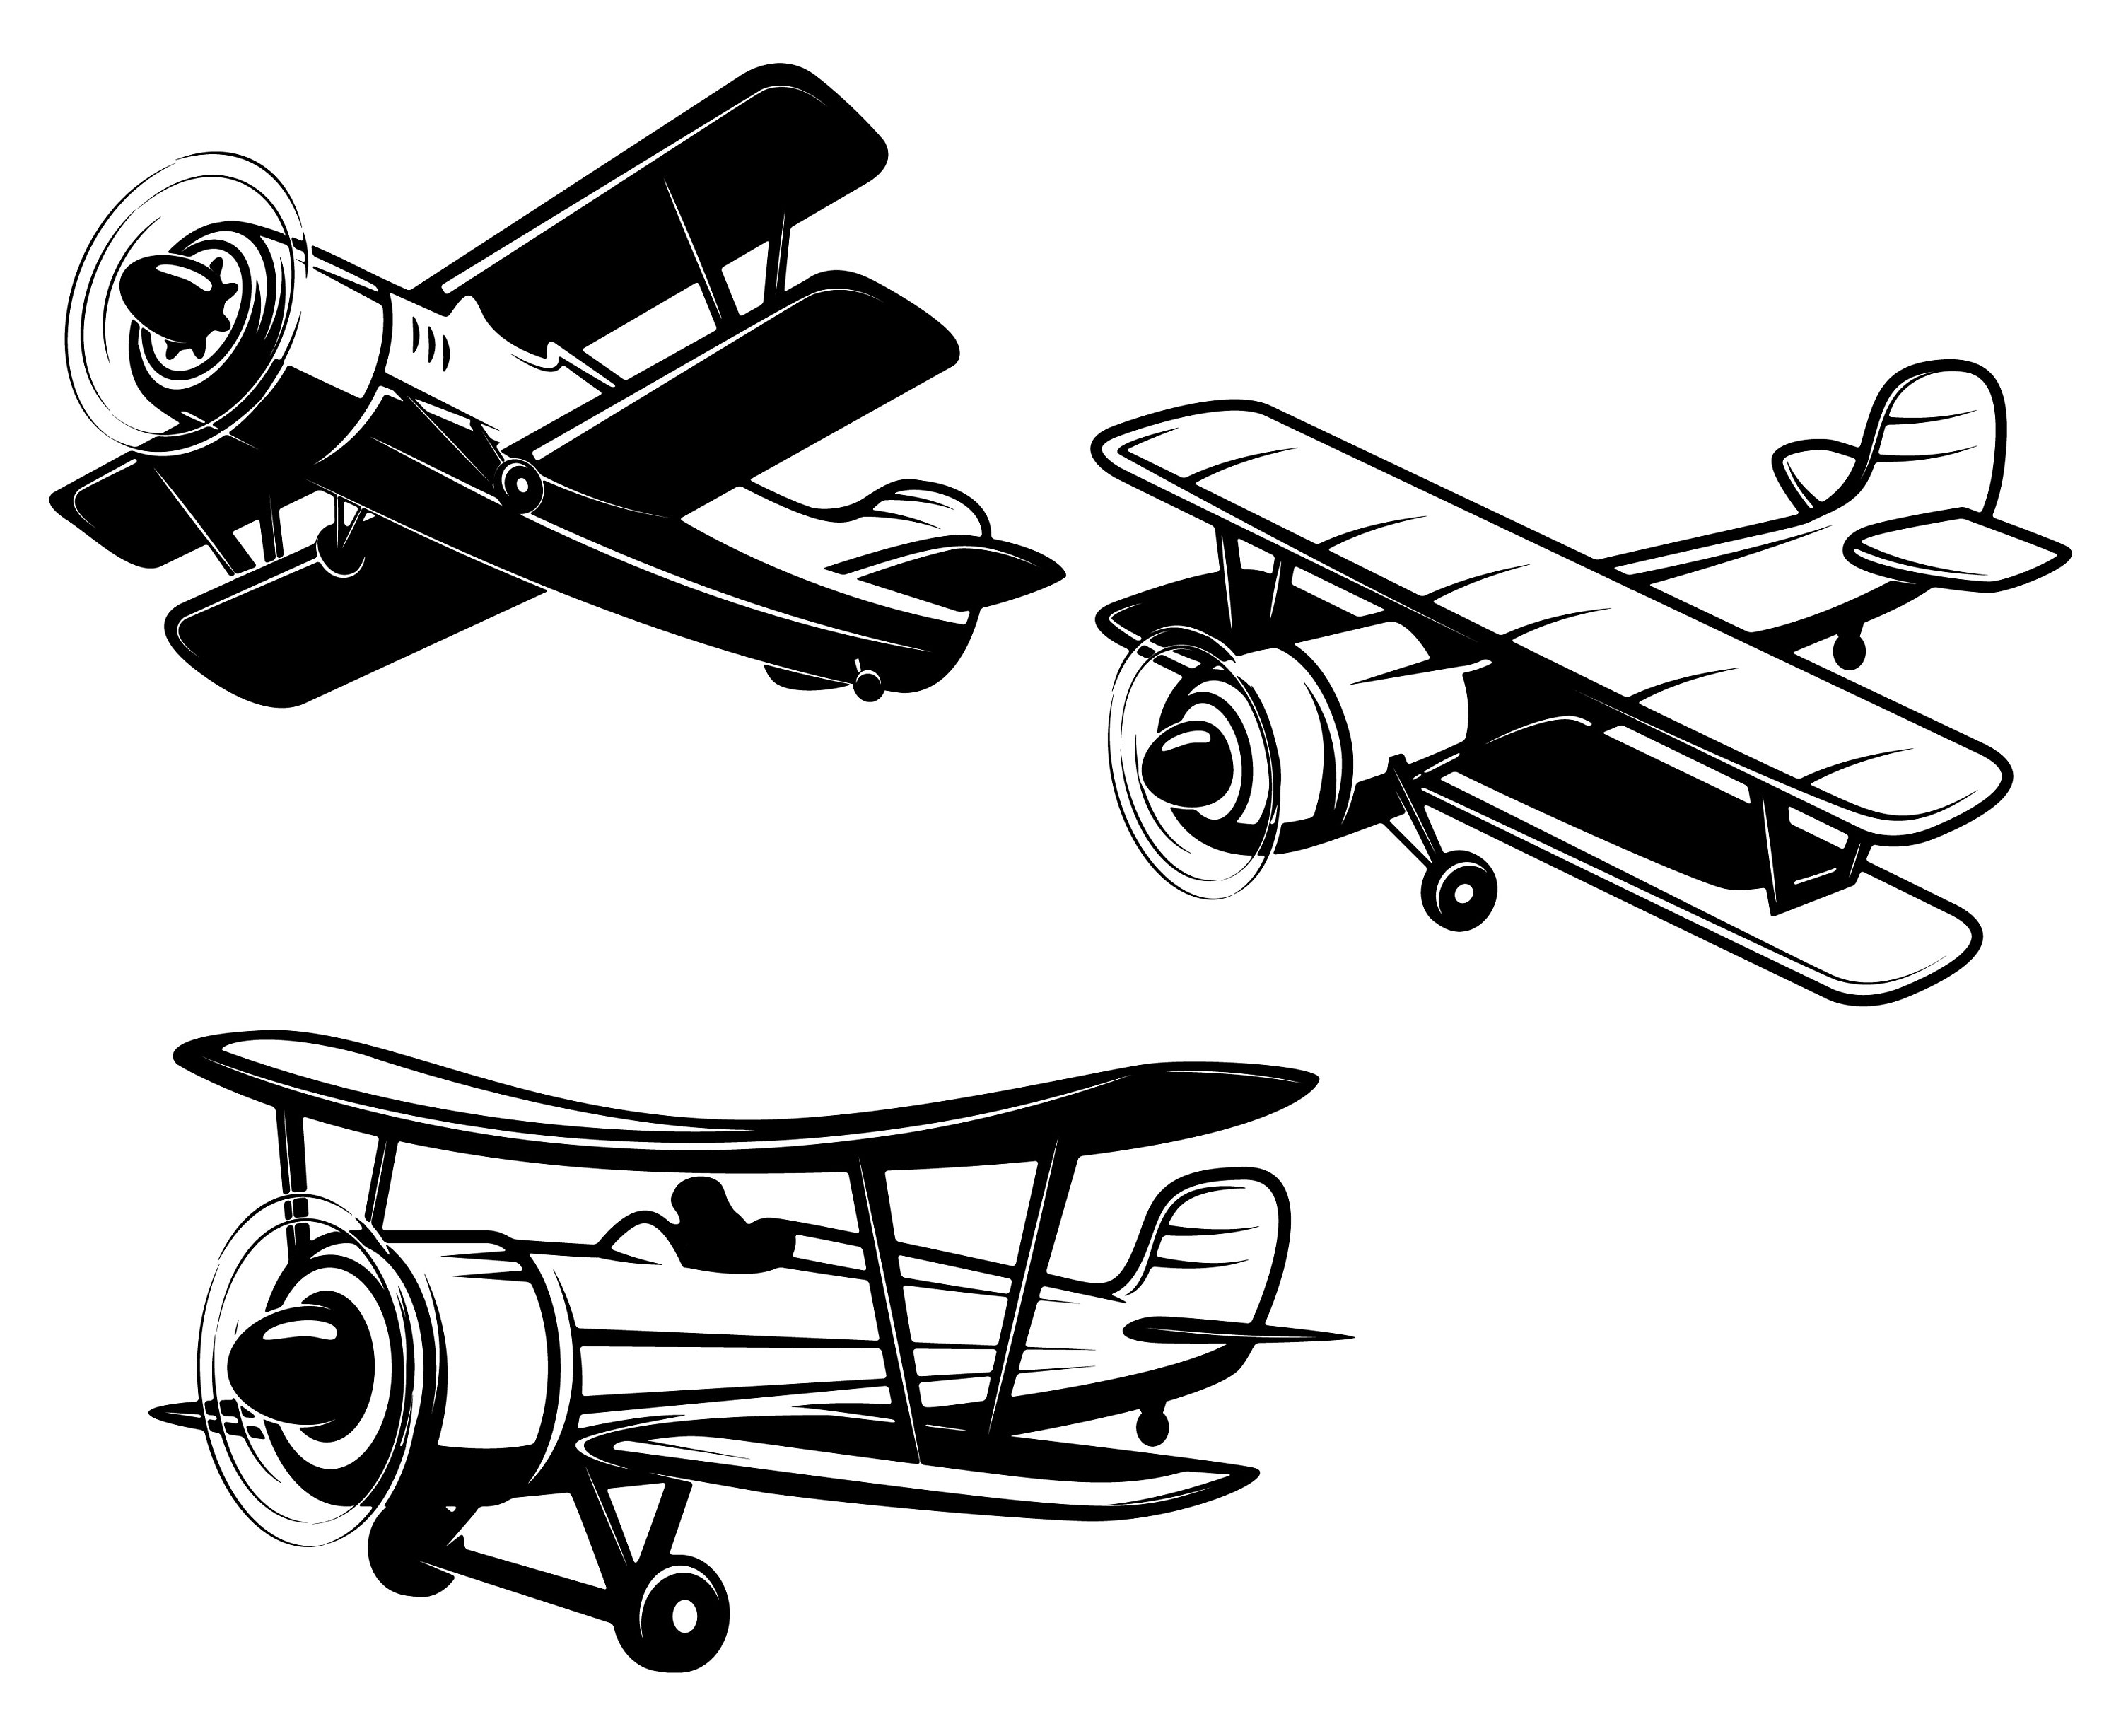 Biplane Clipart - Png Download (#2950596) - PinClipart